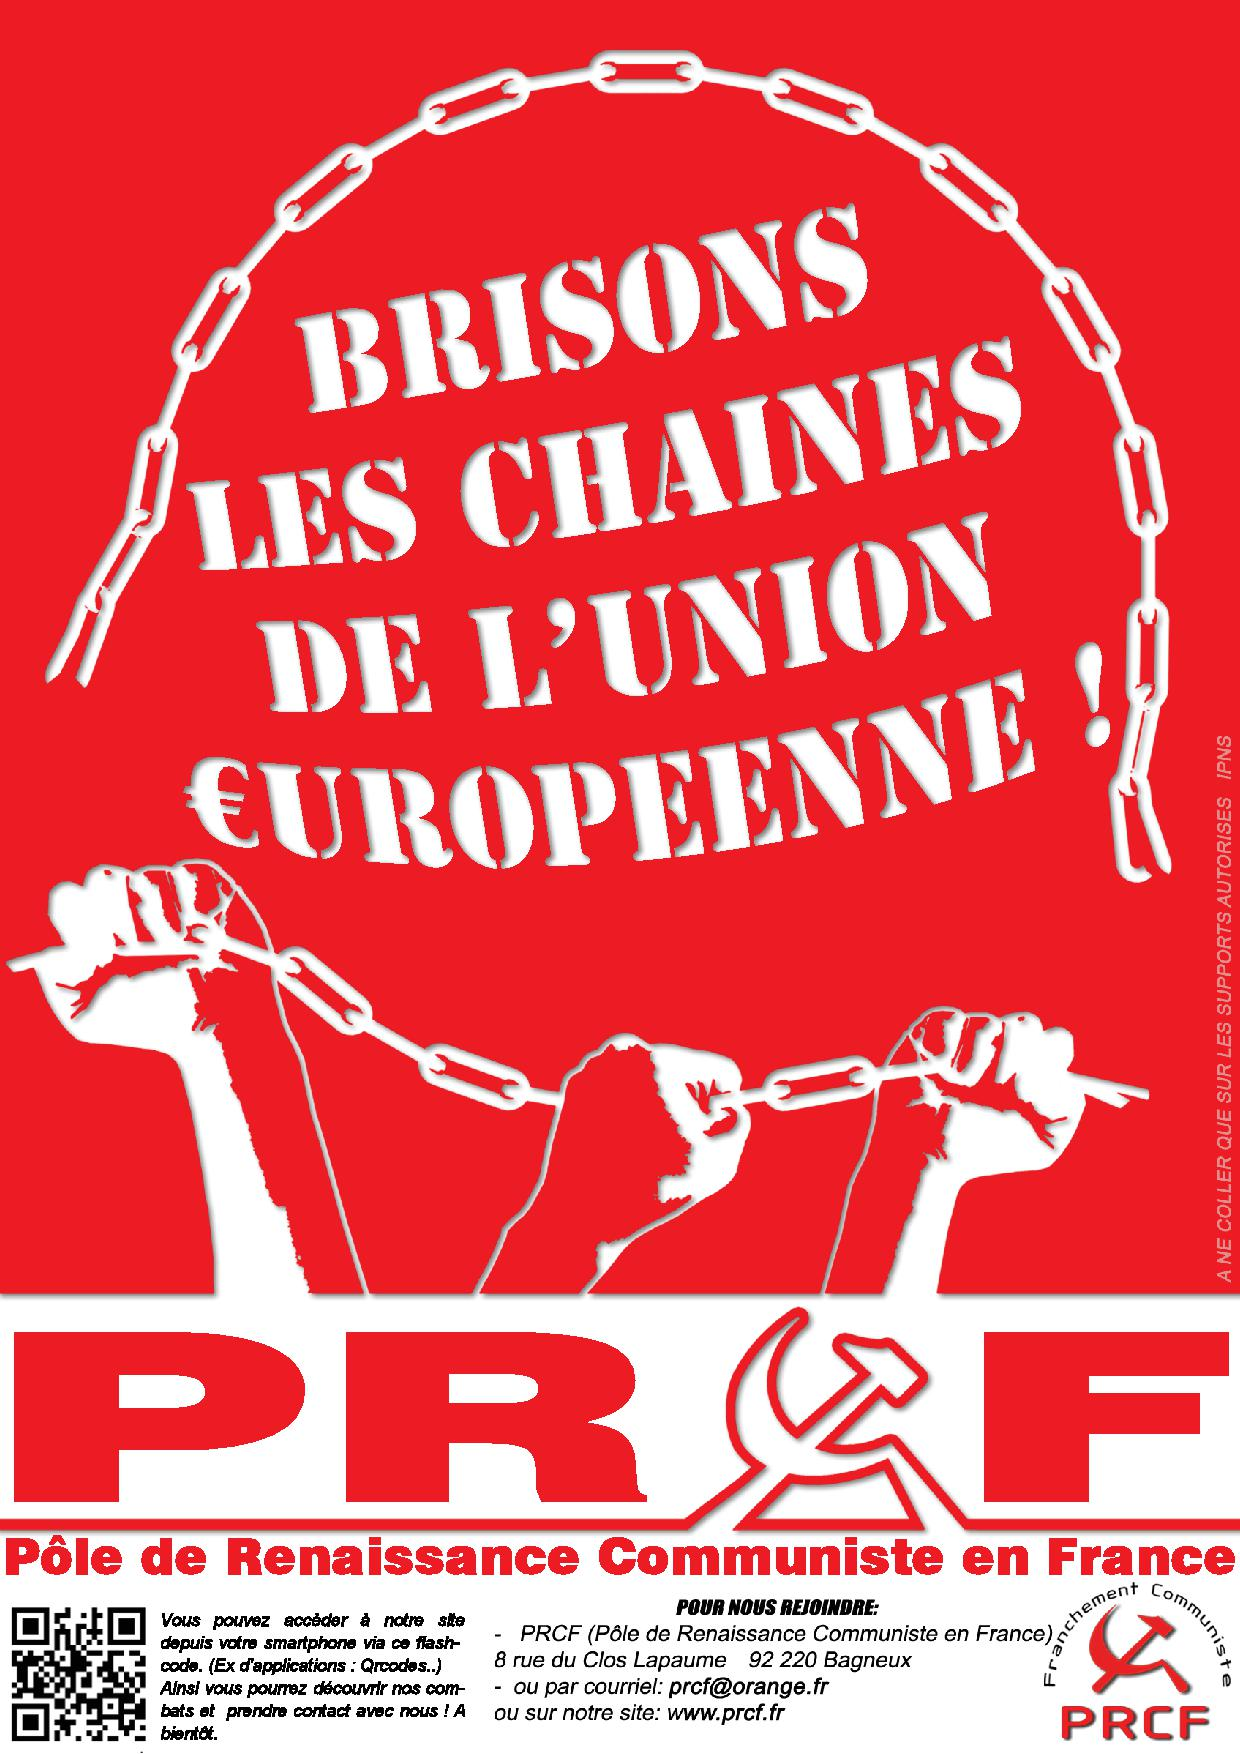 http://www.initiative-communiste.fr/wp-content/uploads/2013/05/BRISONS-LES-CHAINES-DE-L-UNION-EUROPEENNE.jpg